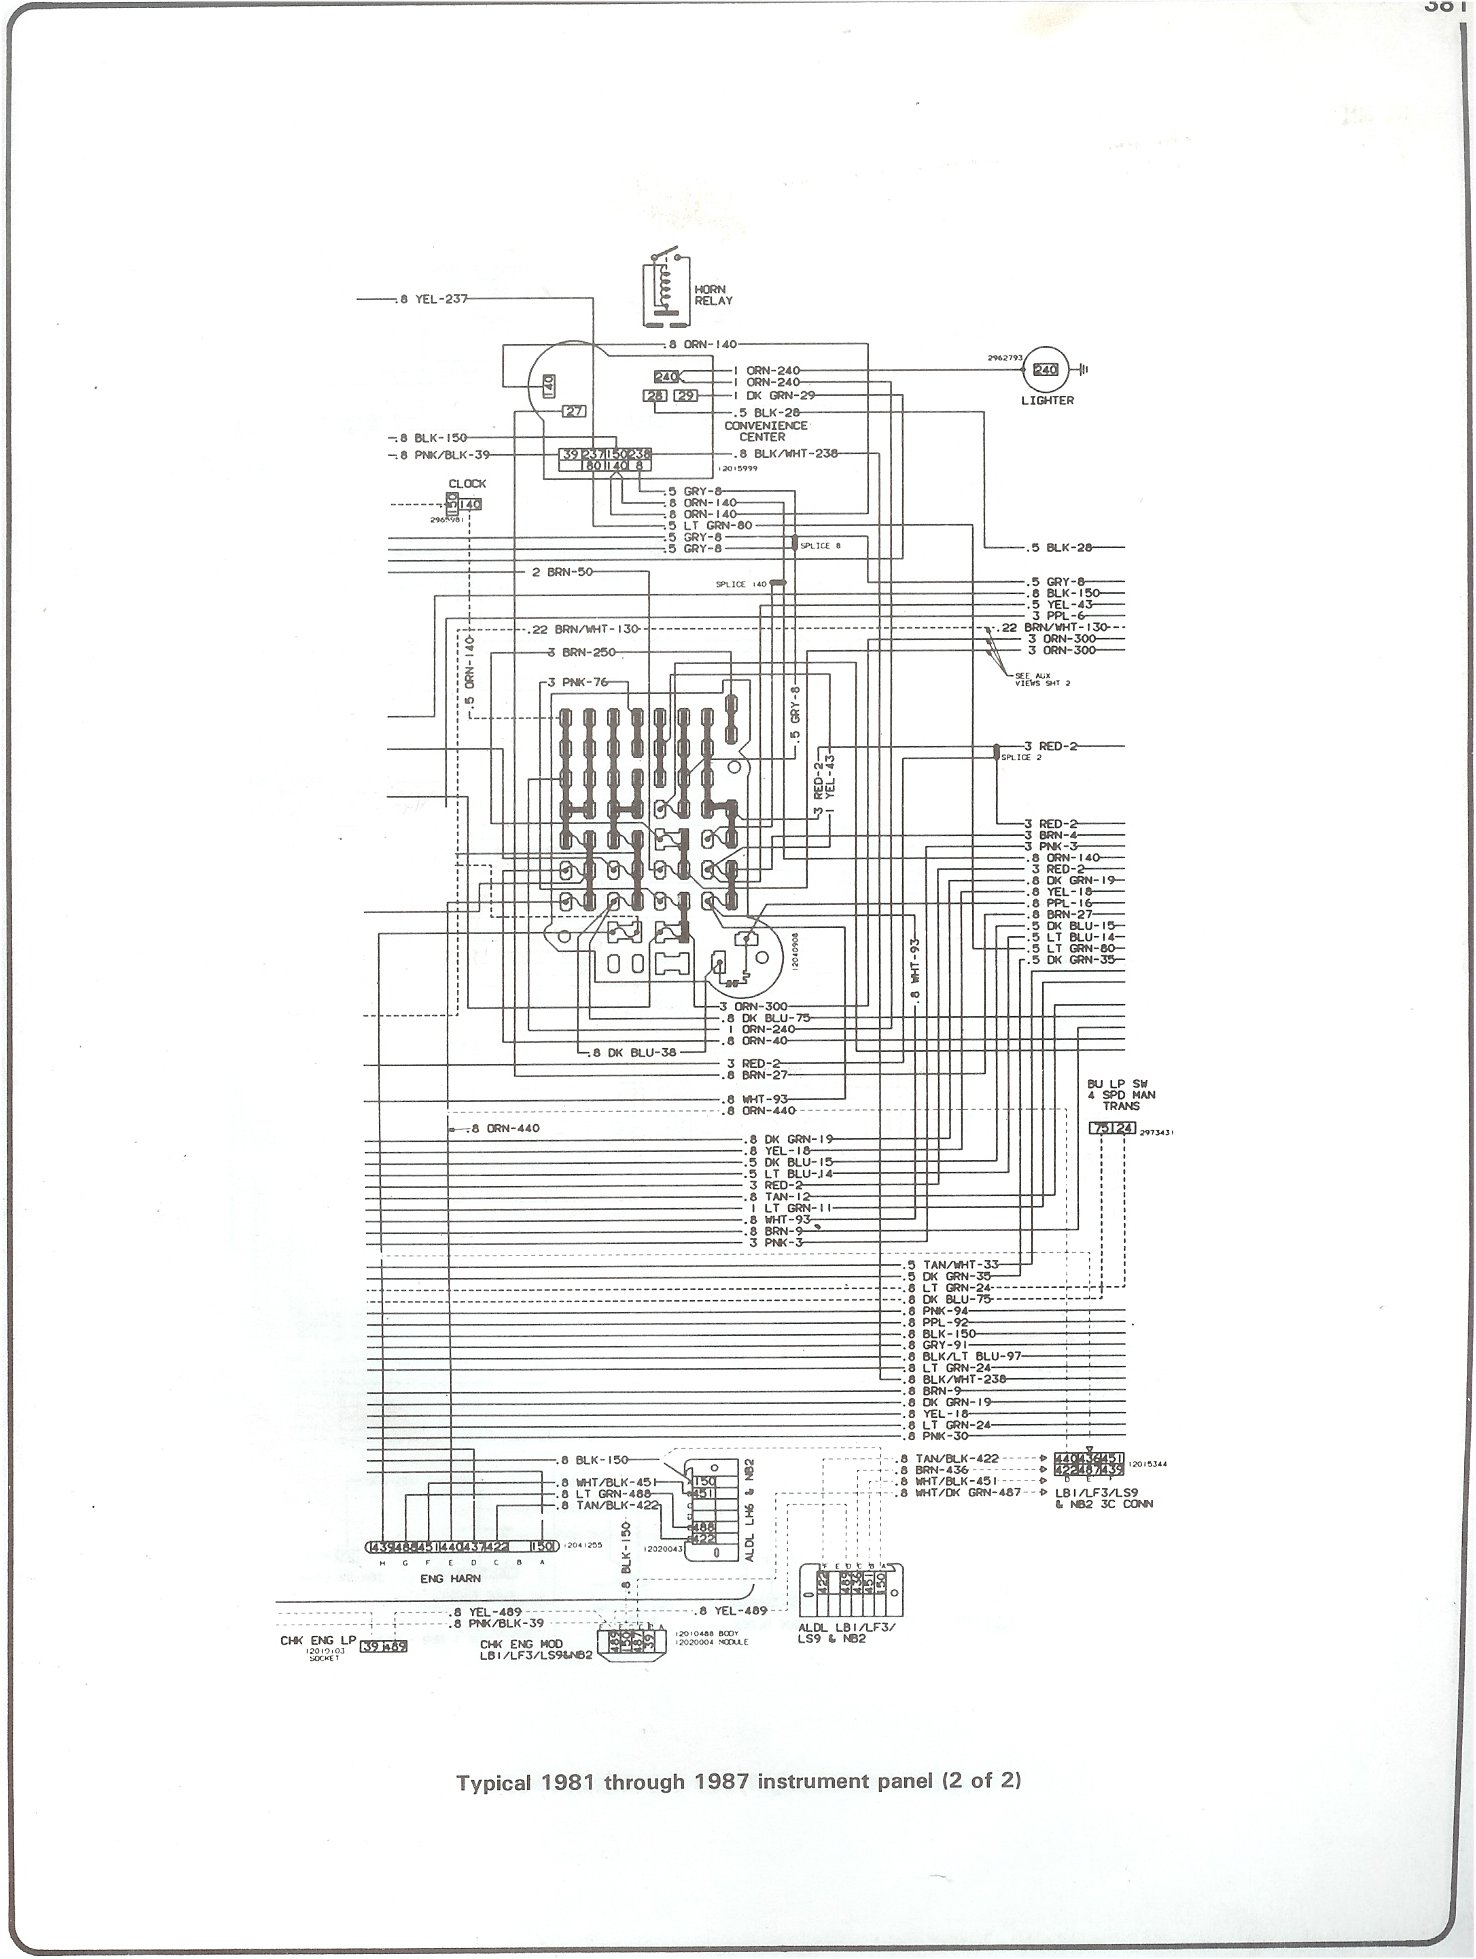 1975 gmc jimmy wiring diagram 73 87 wiring diagrams chevrolet gmc autos post 1995 gmc jimmy wiring diagram #6